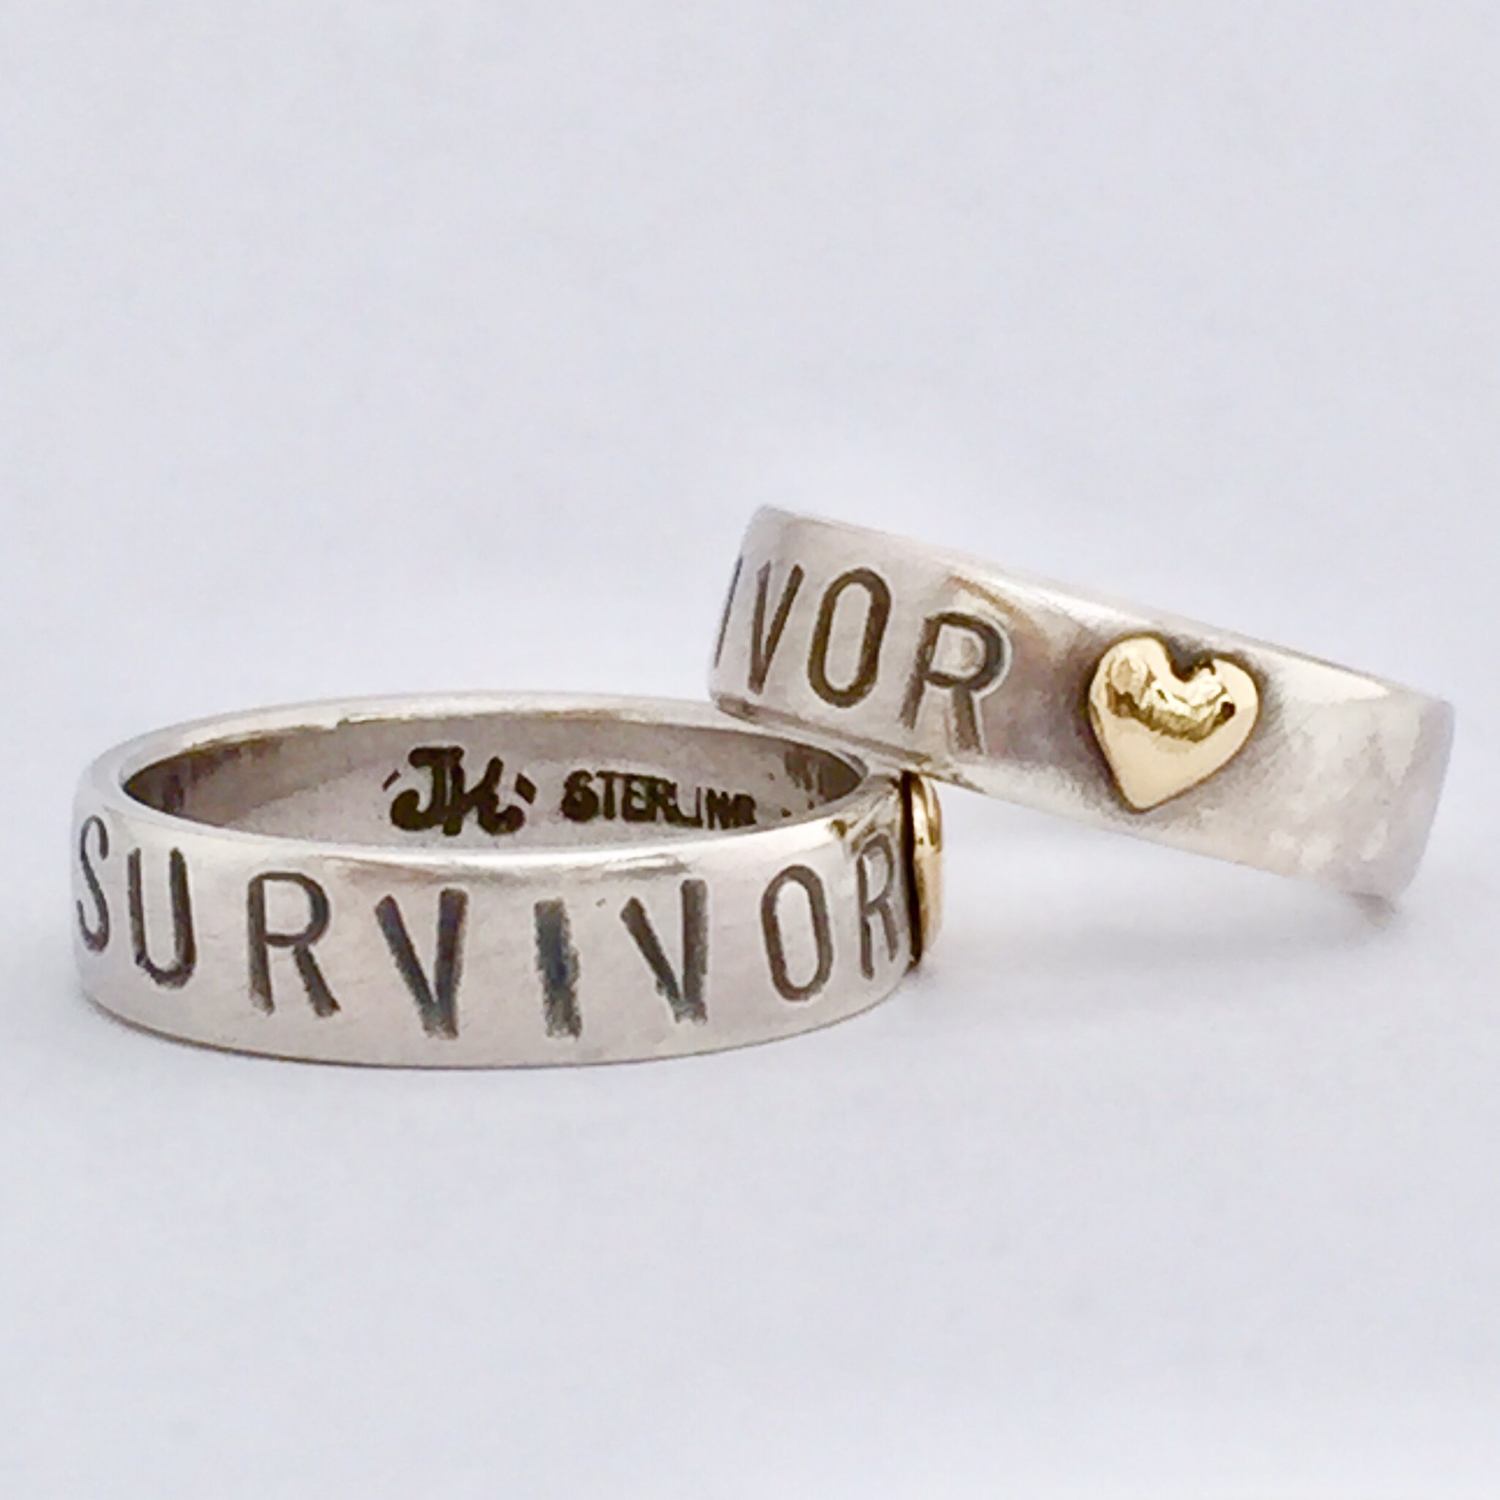 Survivor ring in Sterling Silver with 18k gold heart